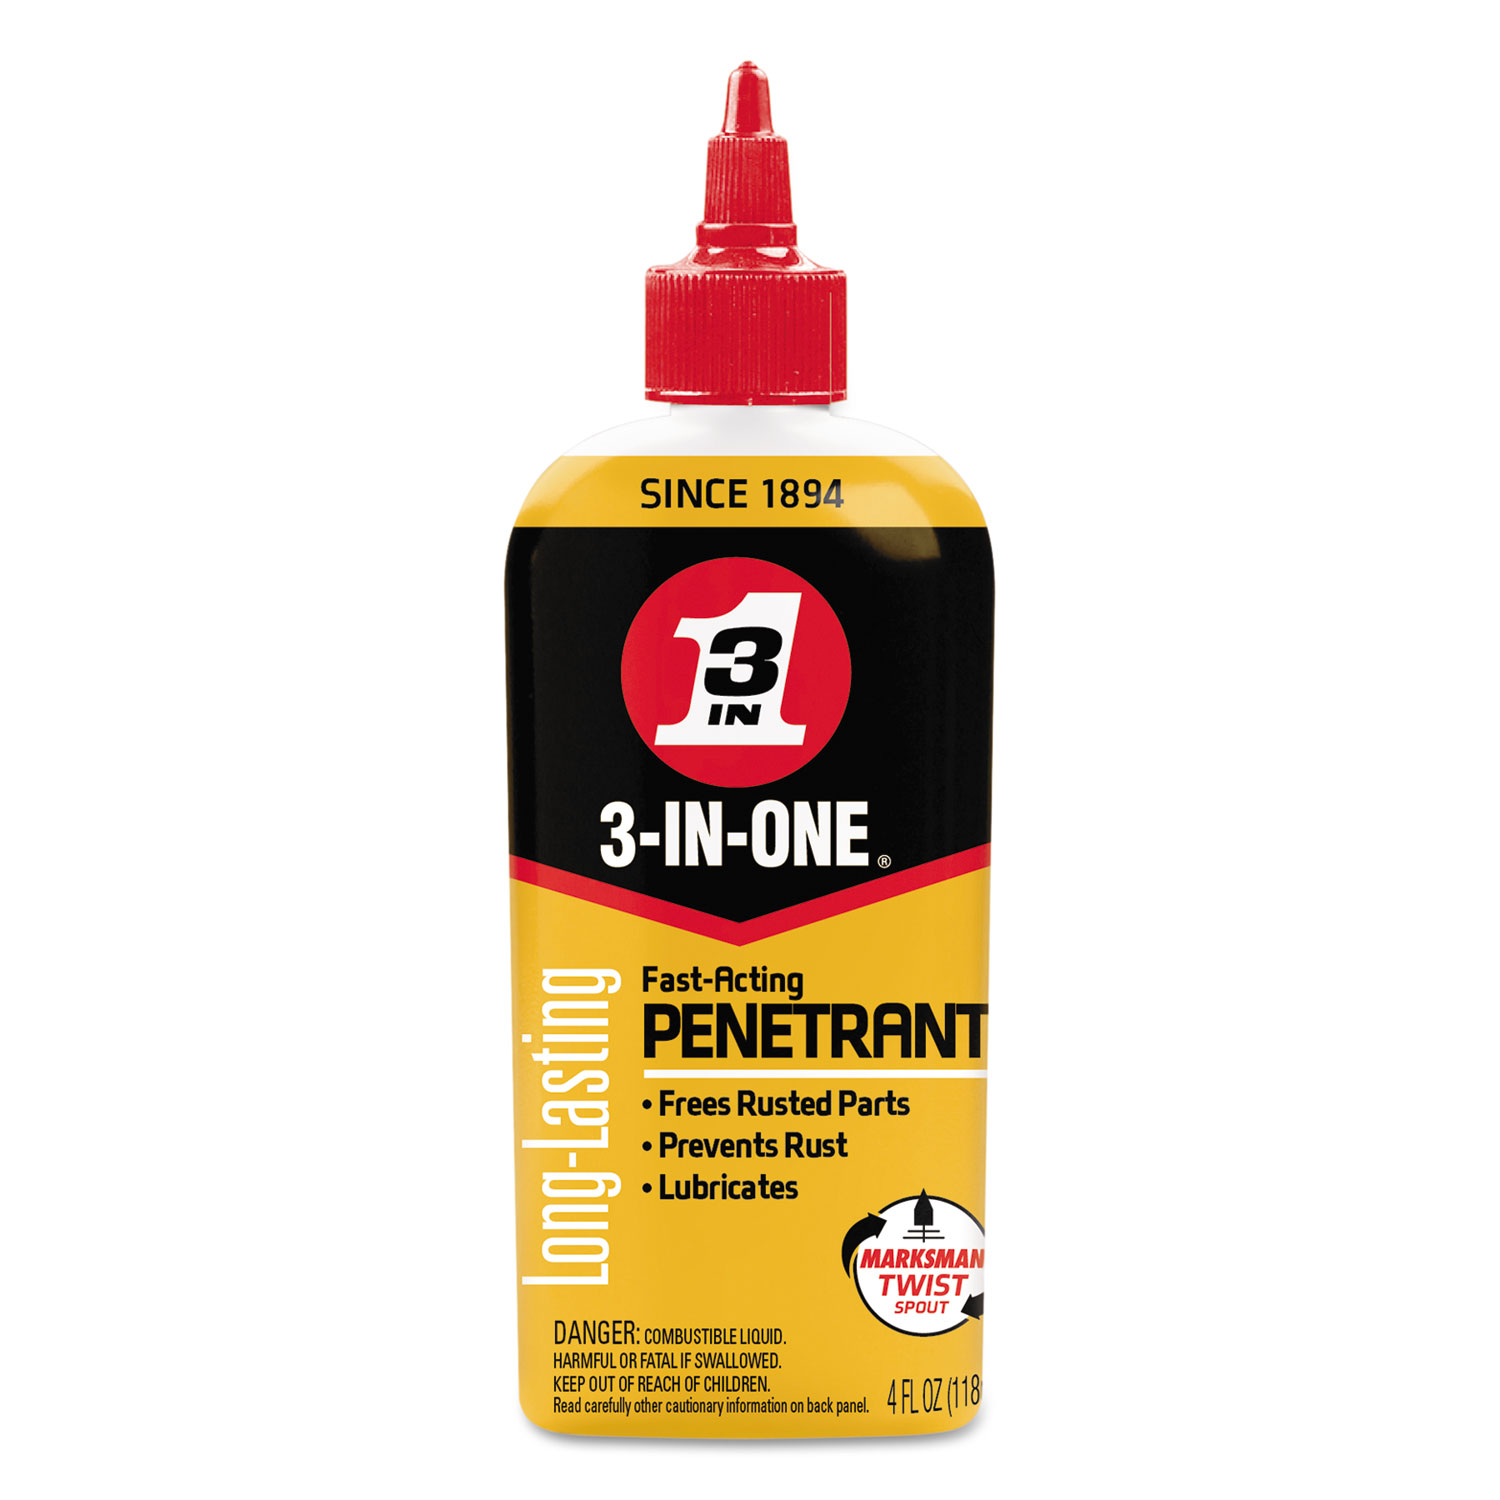 3-IN-ONE Professional High-Performance Penetrant, 4 oz Bottle, 12/CT